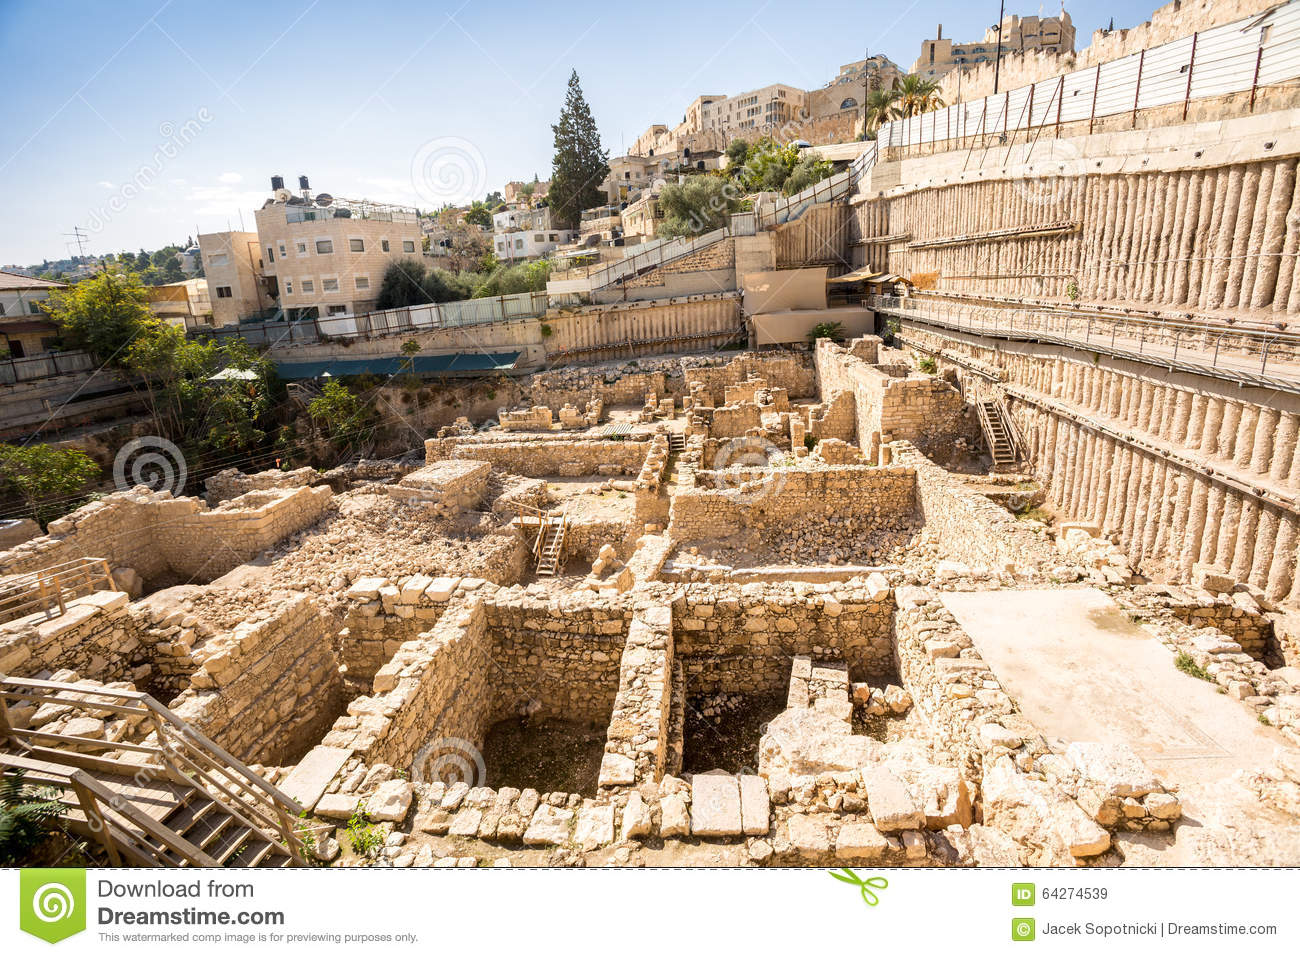 Archeological site in Jerusalem, Israel